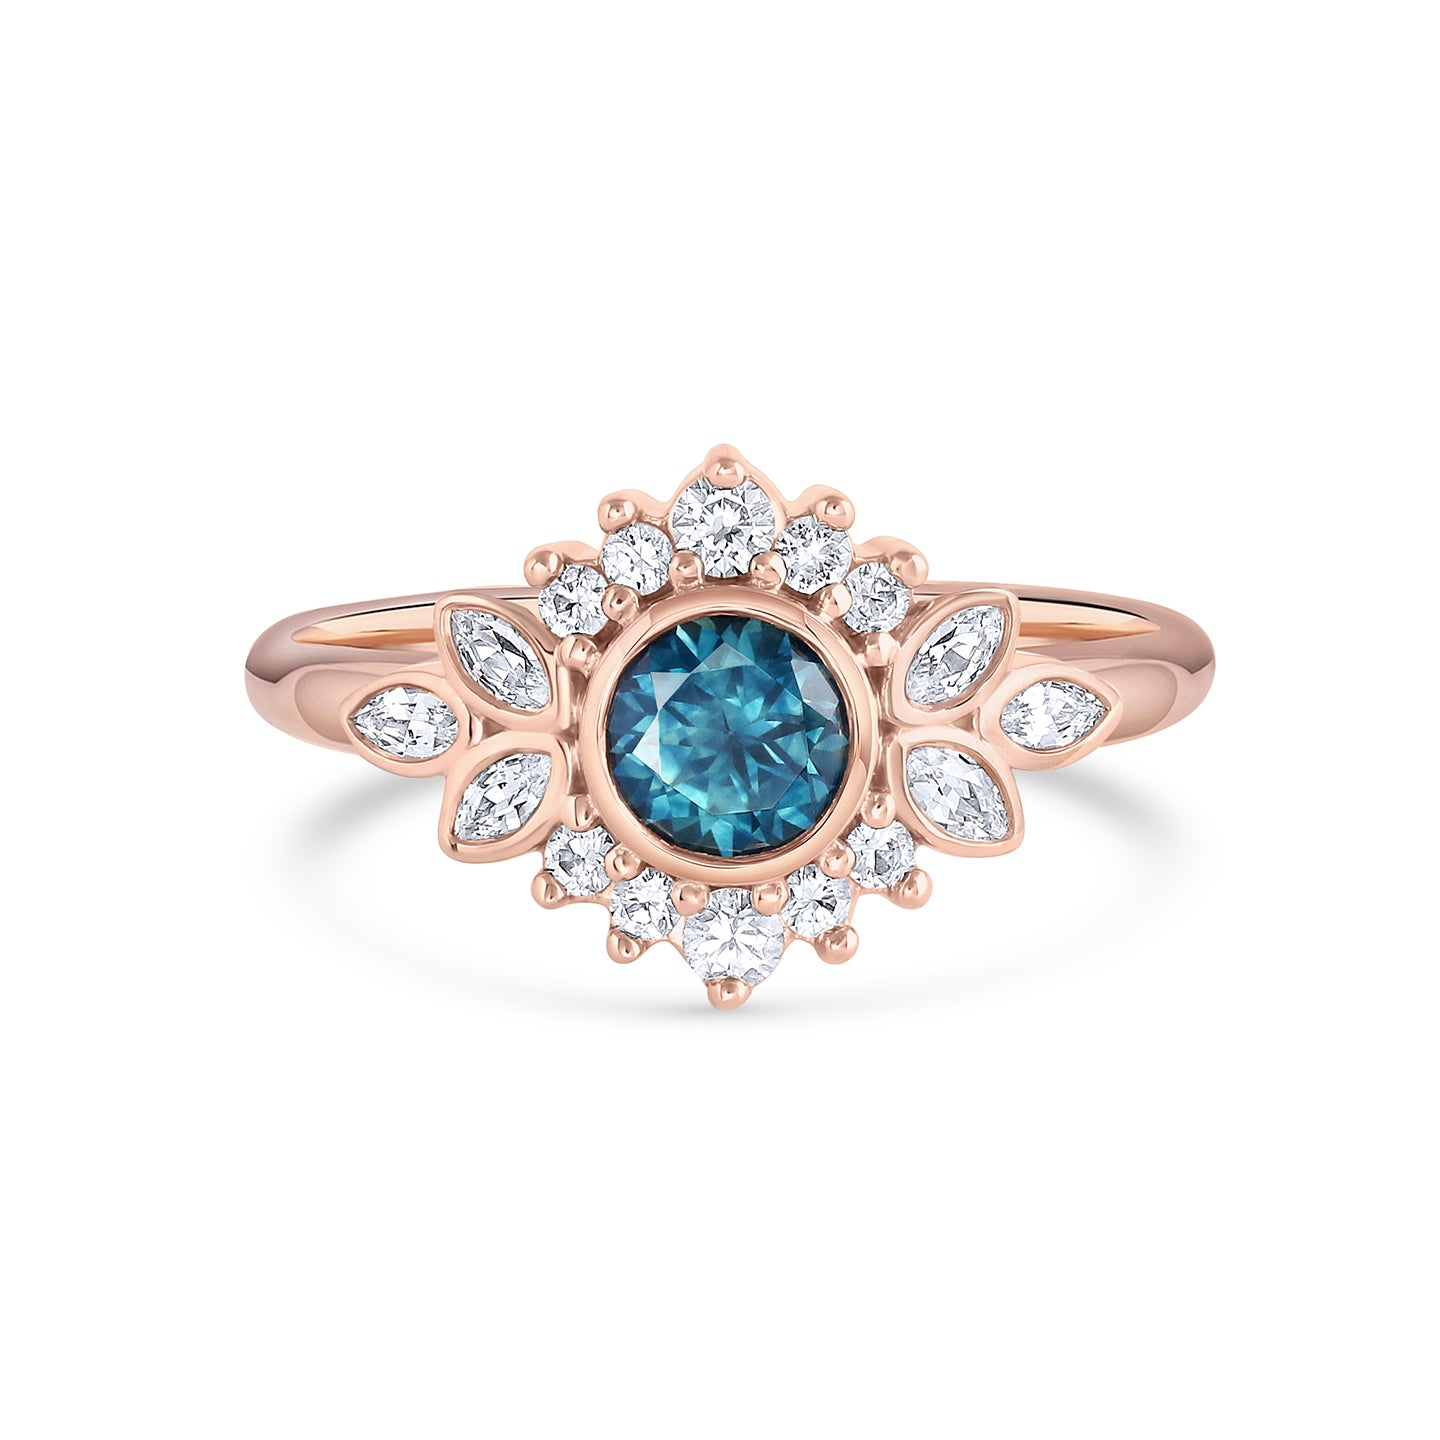 Dahlia | Teal Montana Sapphire Ring with Diamond Halo | Rose Gold